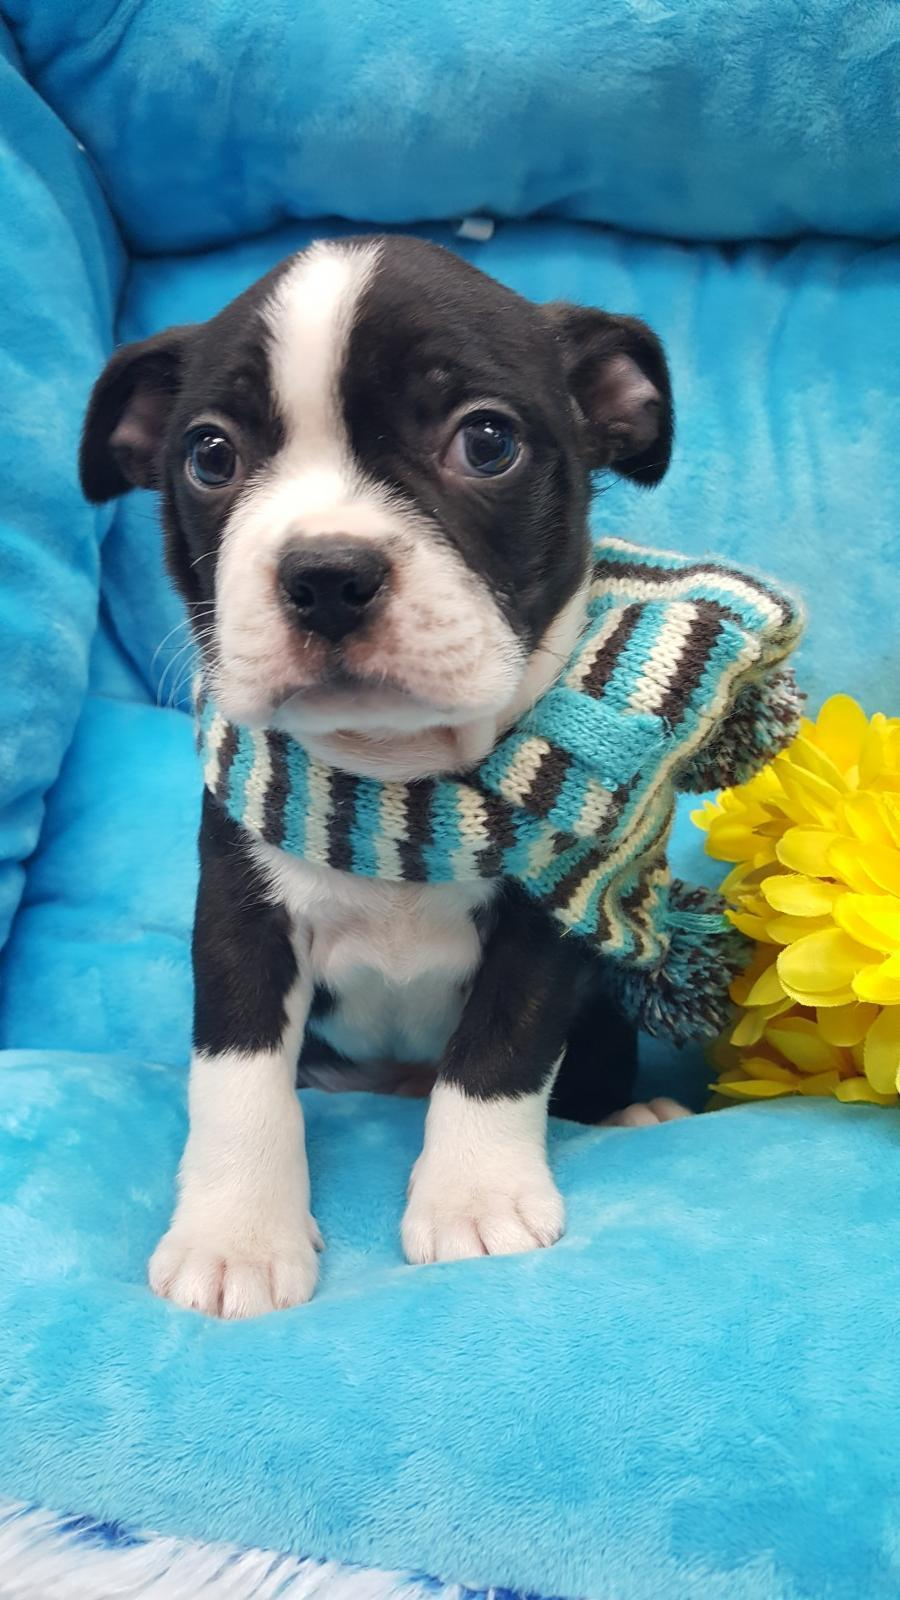 <small><del>Boston Terrier</del></small><br />Happy Boston Terrier